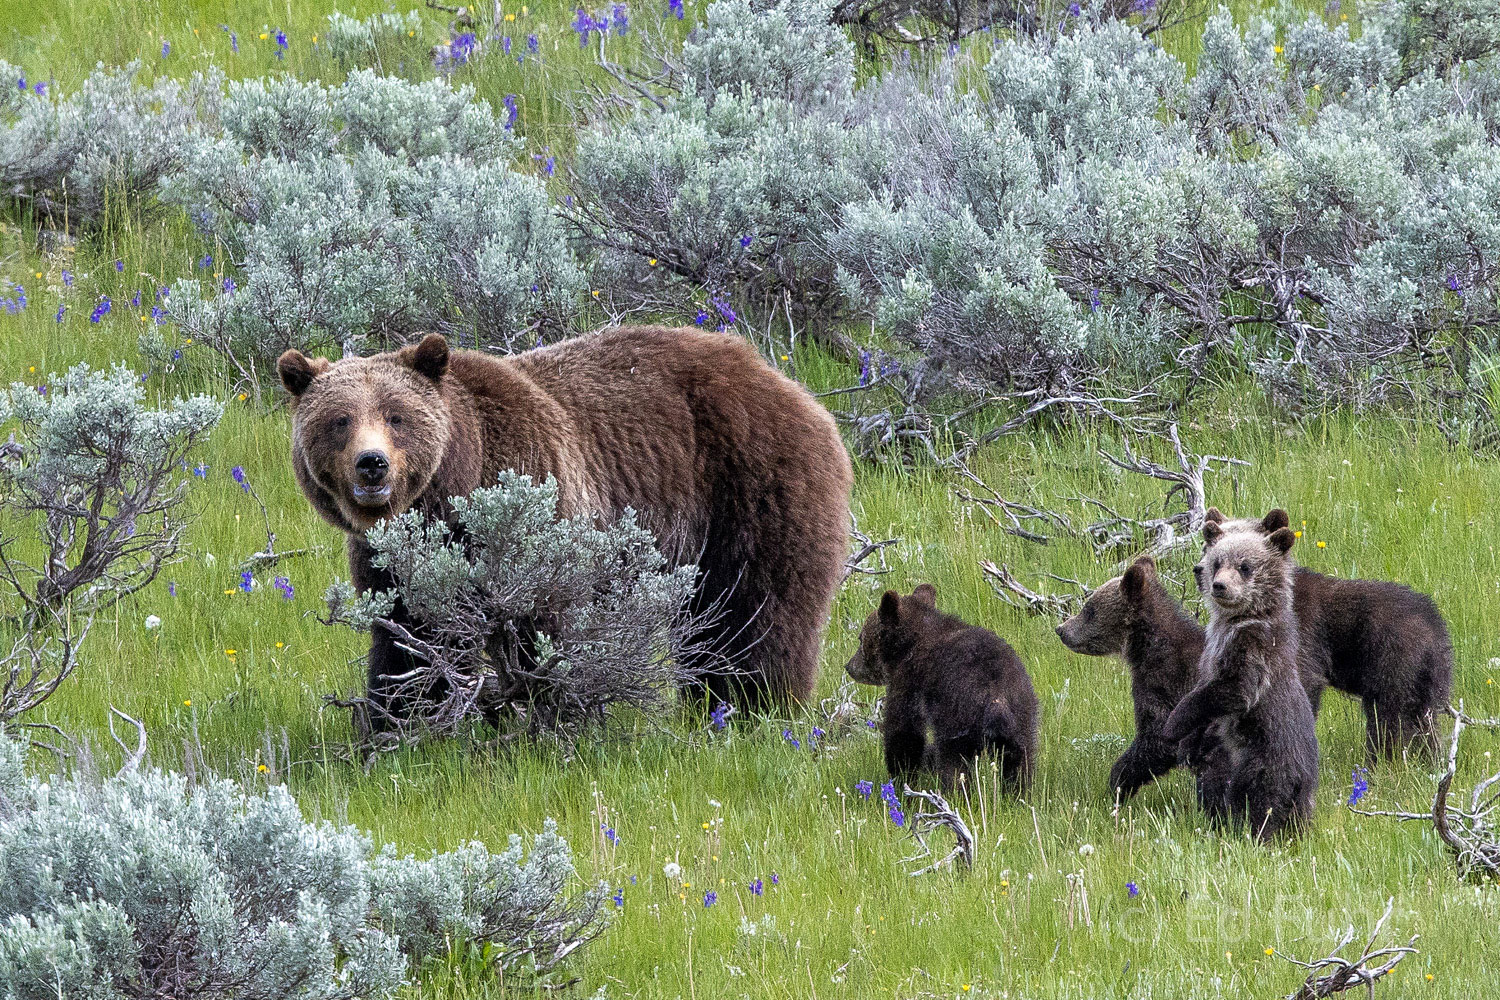 399 and cubs, grizzly, 399, 610, subadult, grizzlies, cub, quad, summer, grand teton, , photo